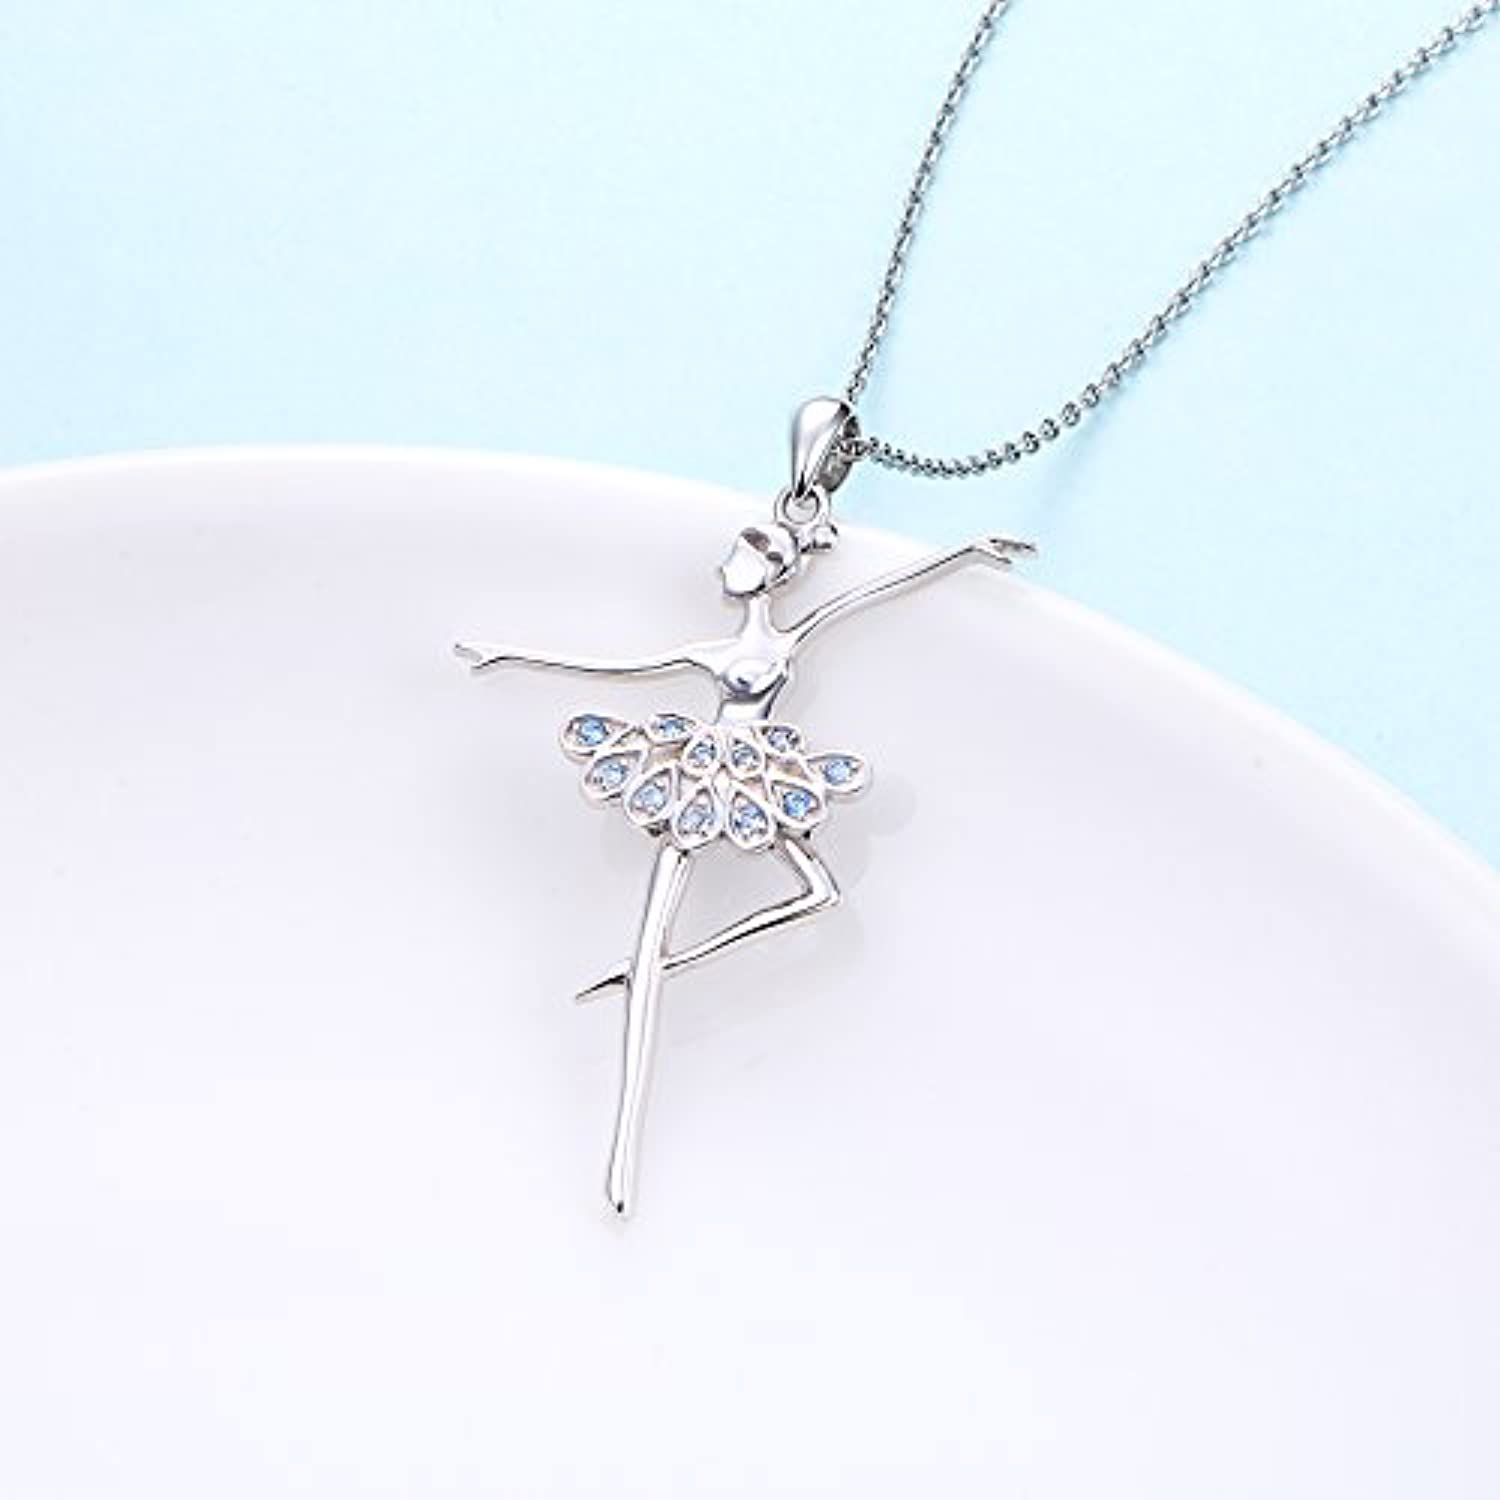 925 Sterling Silver Dancing Ballerina Dancer Ballet Dance Pendant Necklace Recital Gift for Teen Girls Women,18